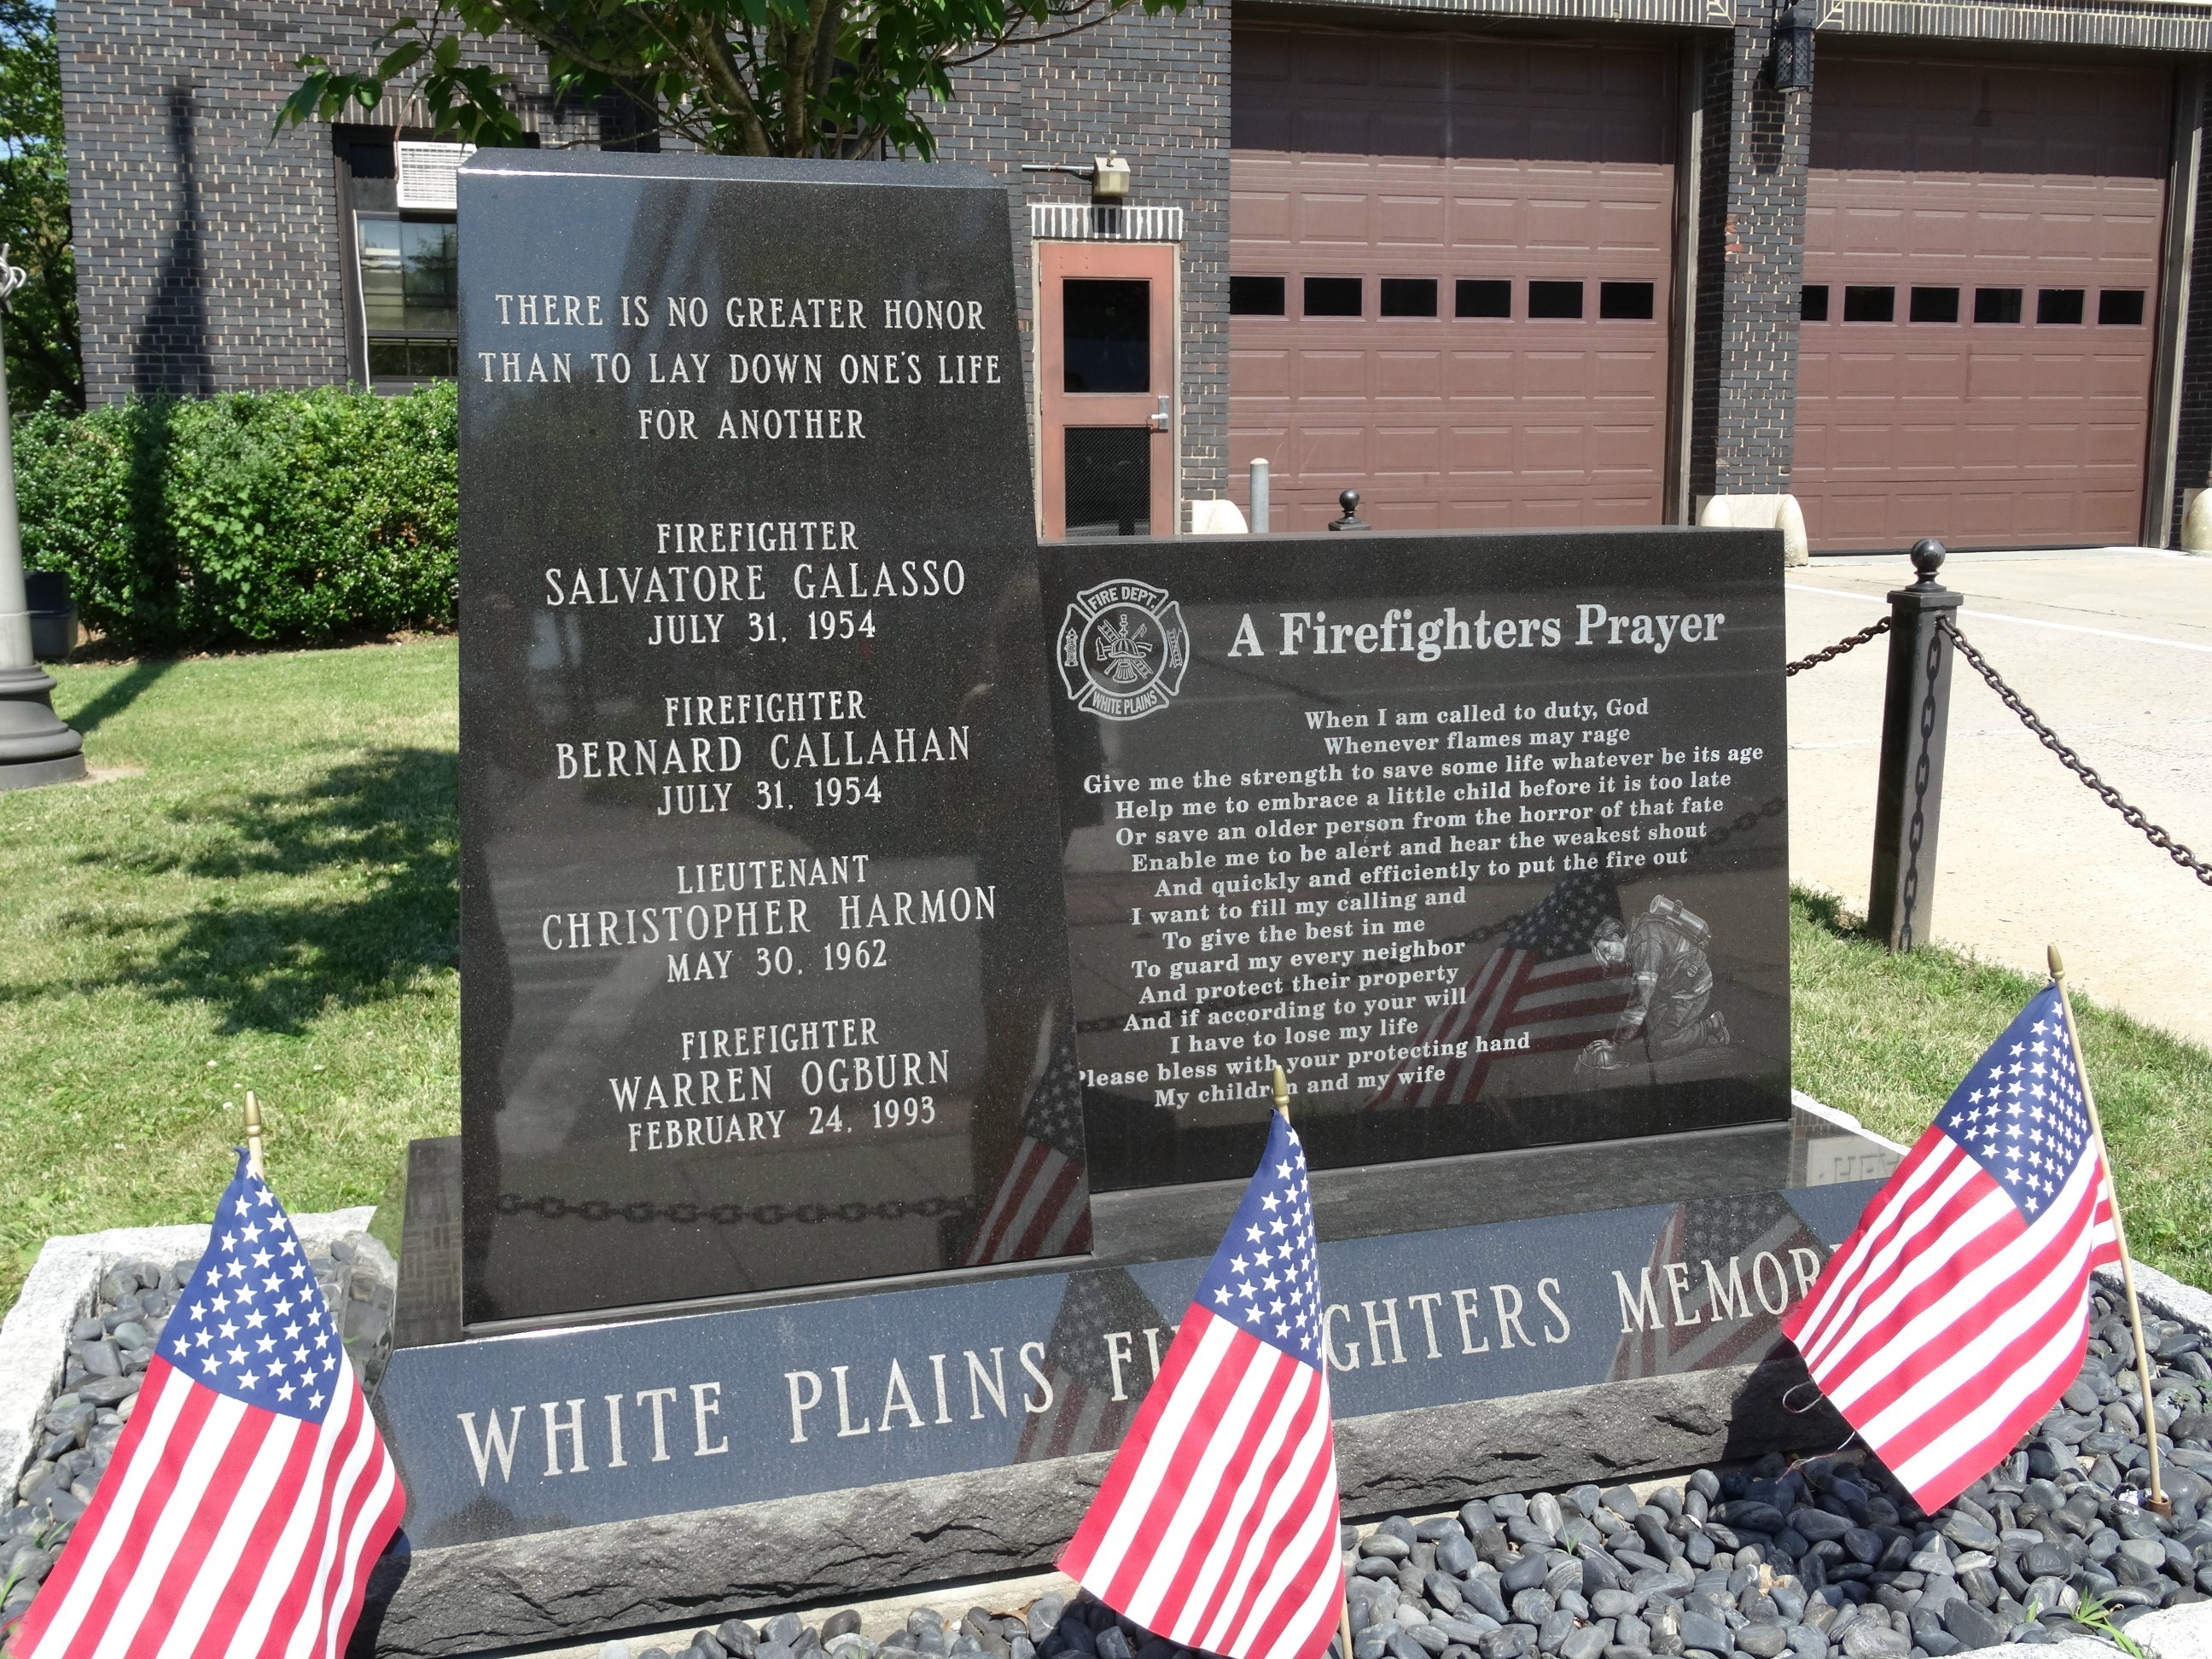 Firefighters Memorial